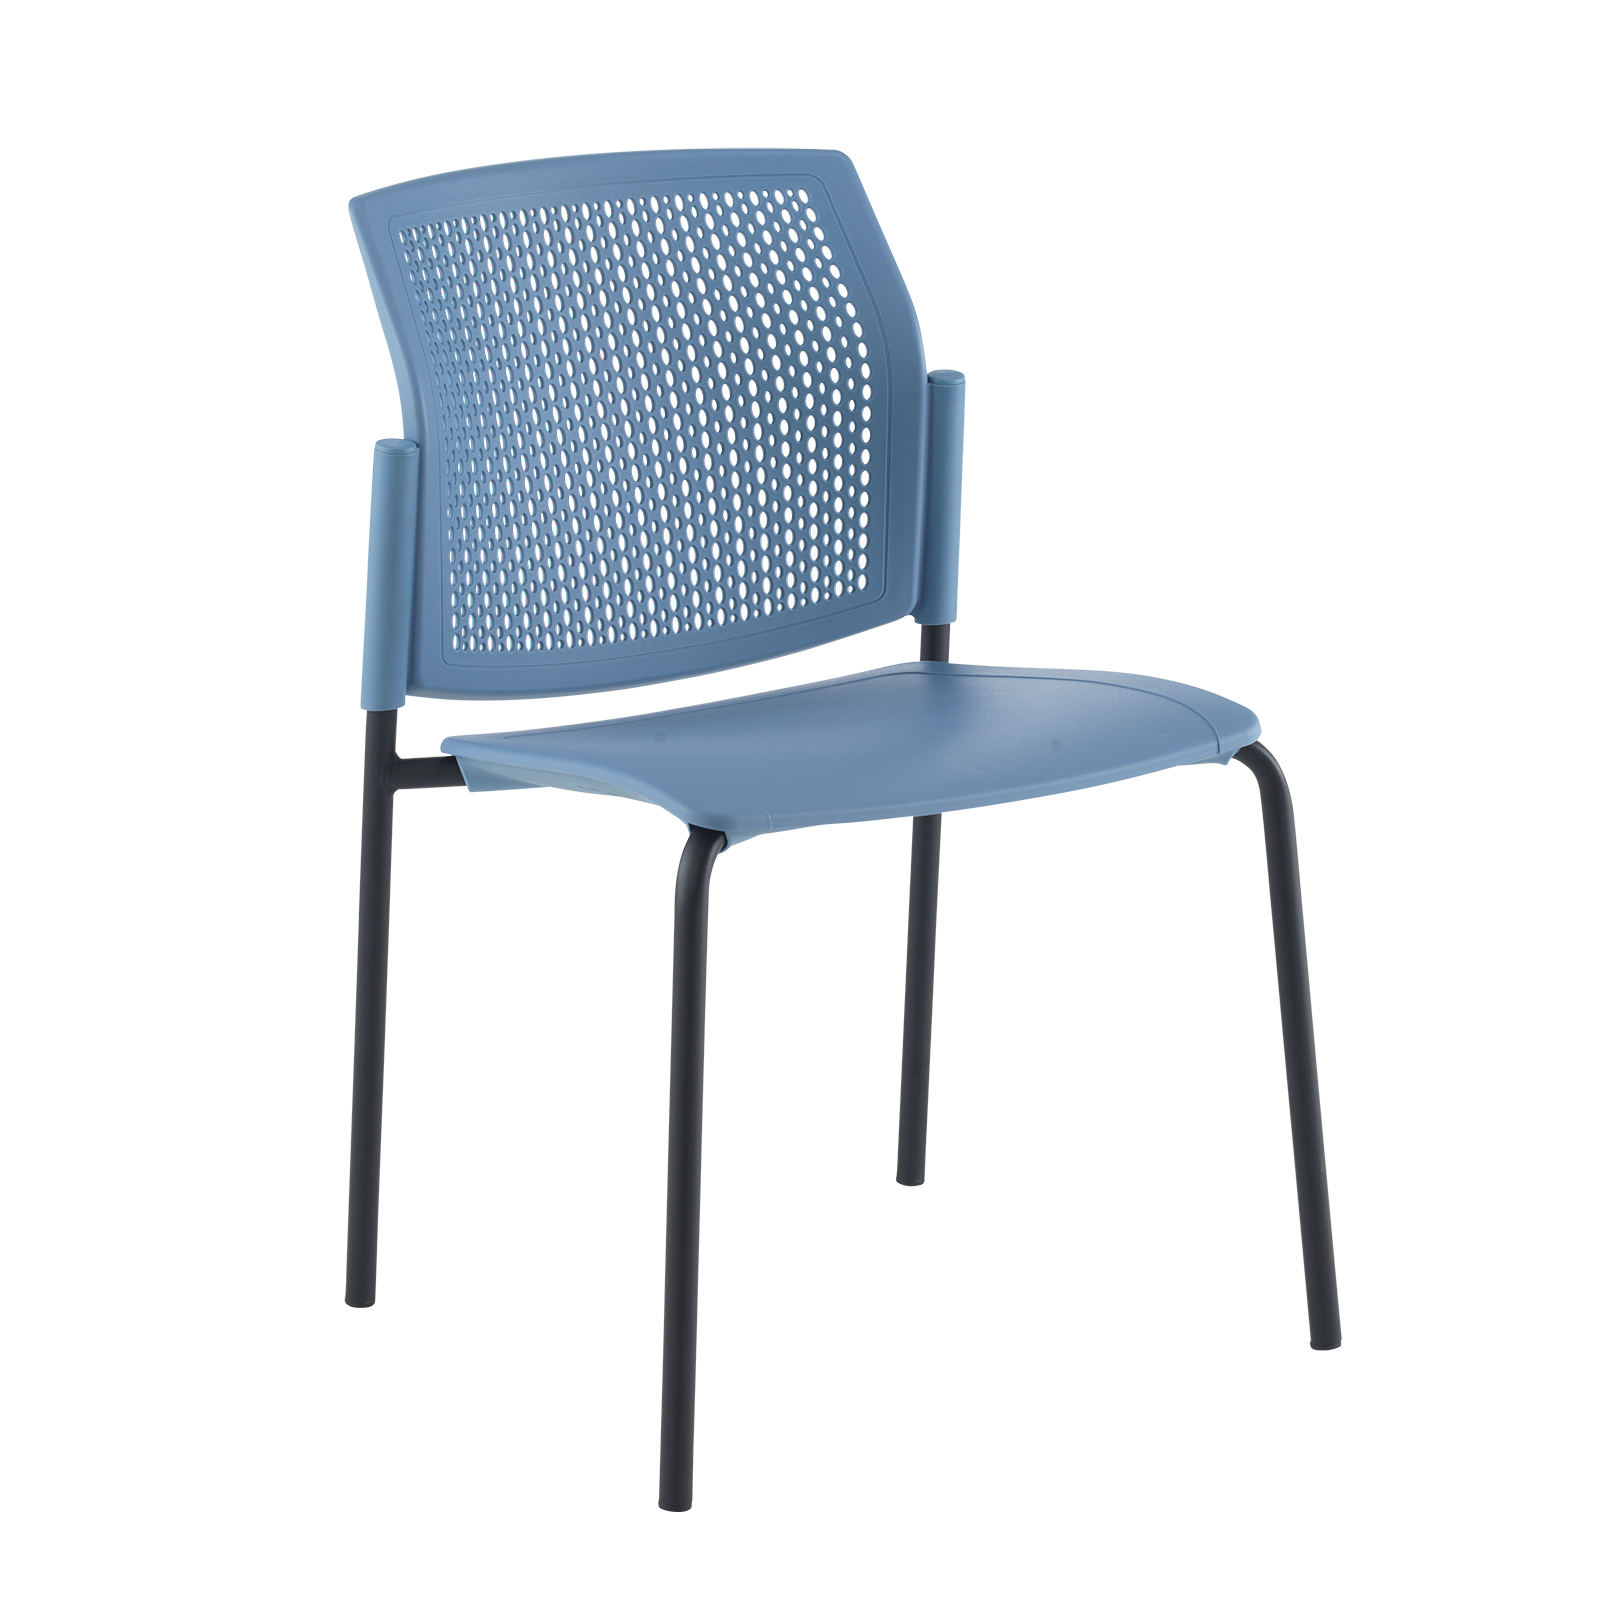 Santana 4 leg stacking chair with plastic seat and perforated back